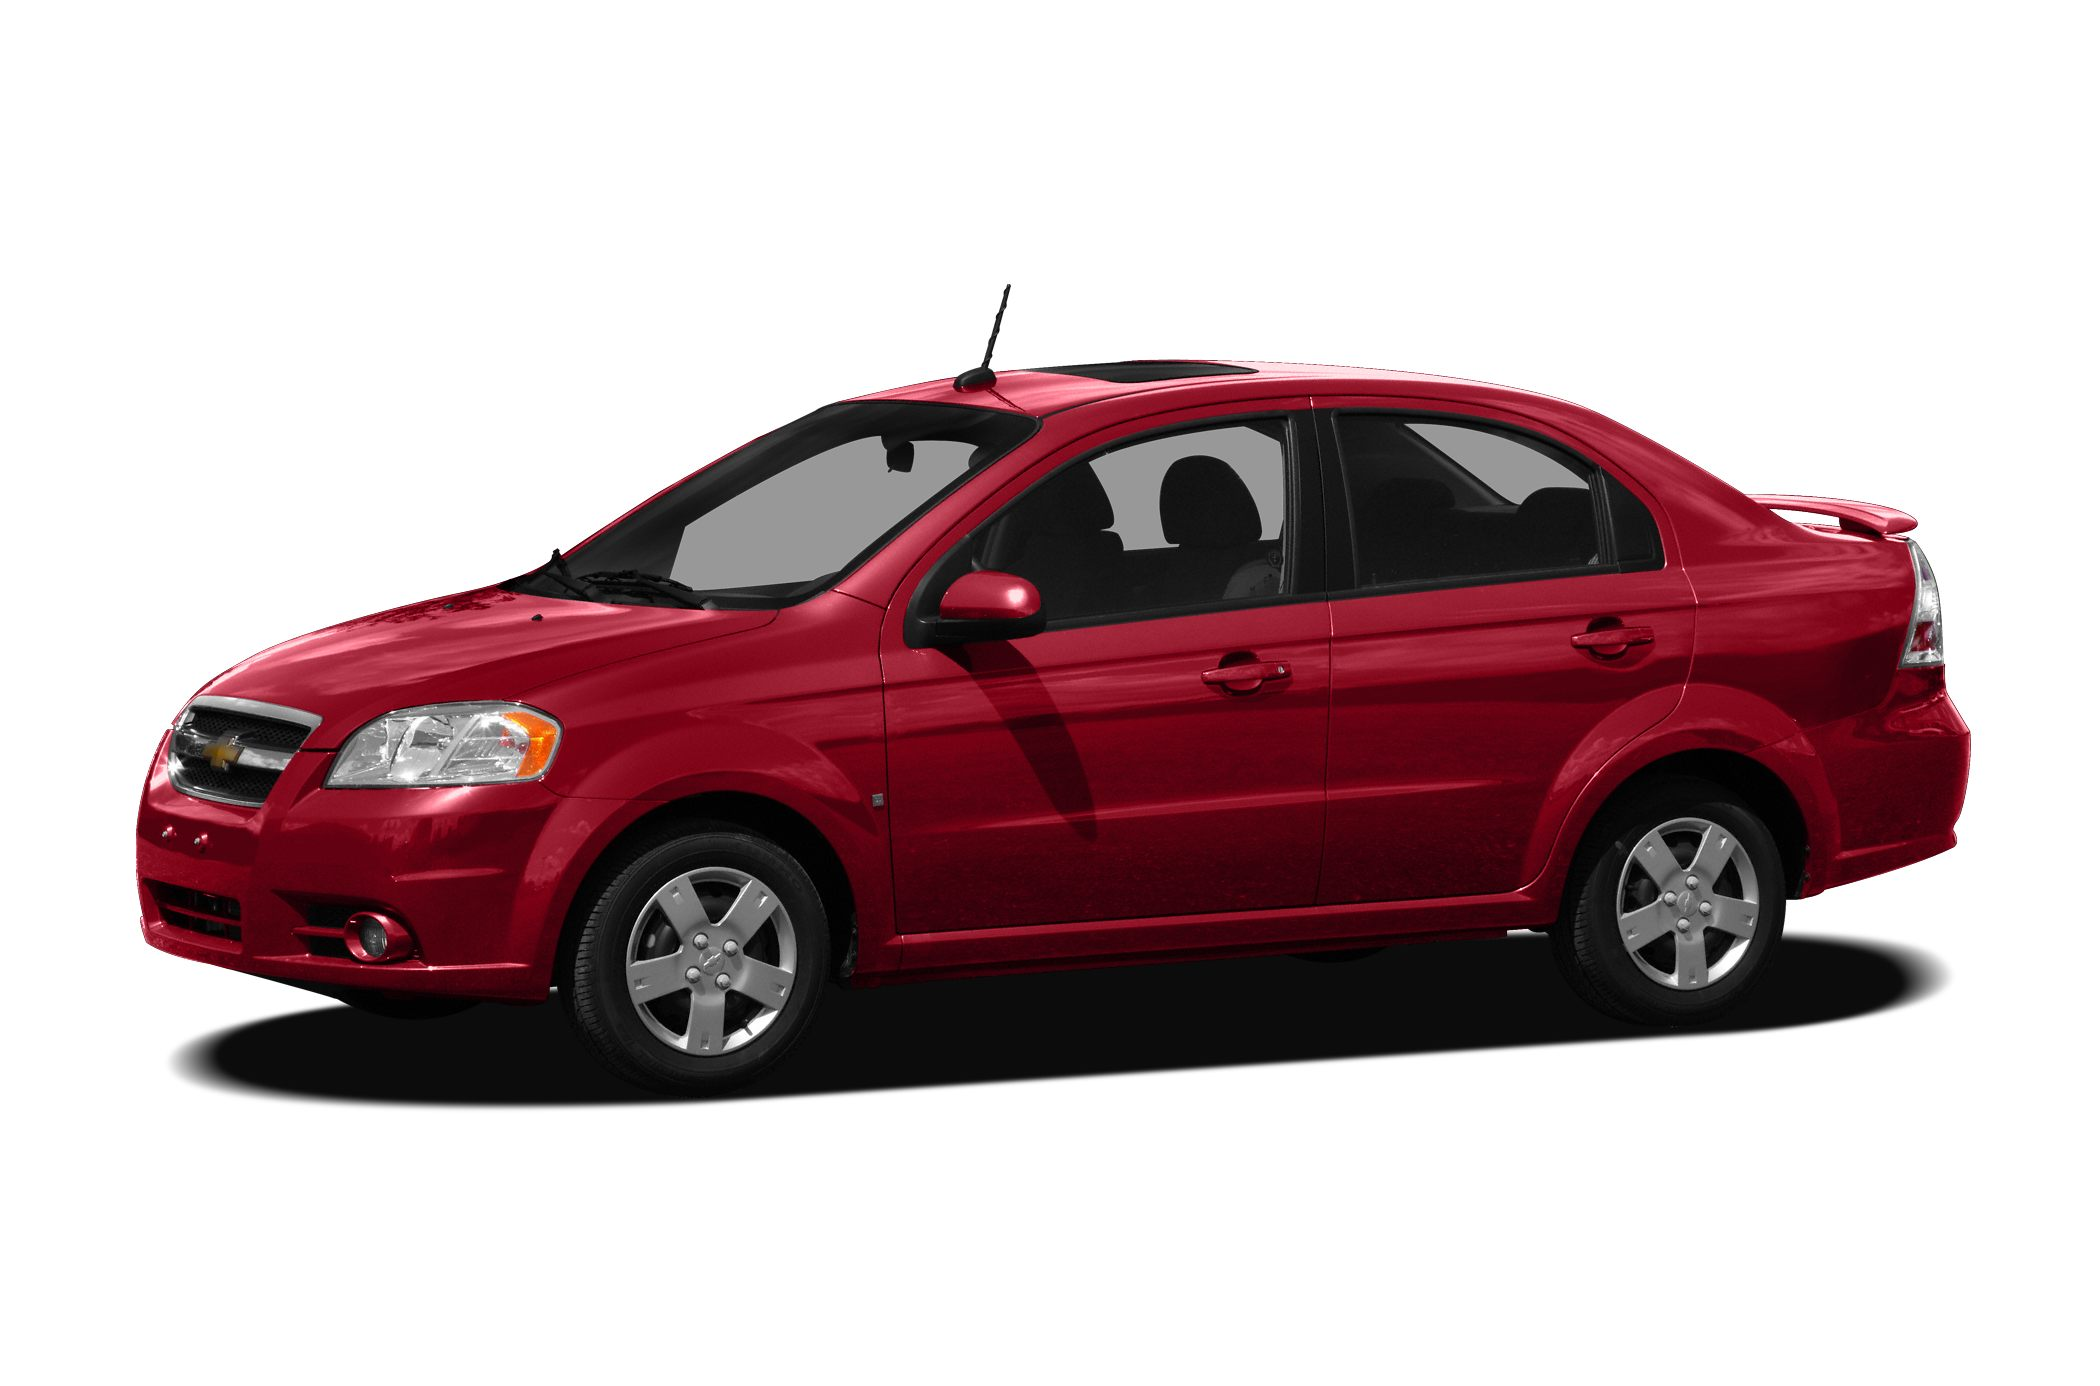 2011 Chevrolet Aveo LS Sedan for sale in Belton for $0 with 84,885 miles